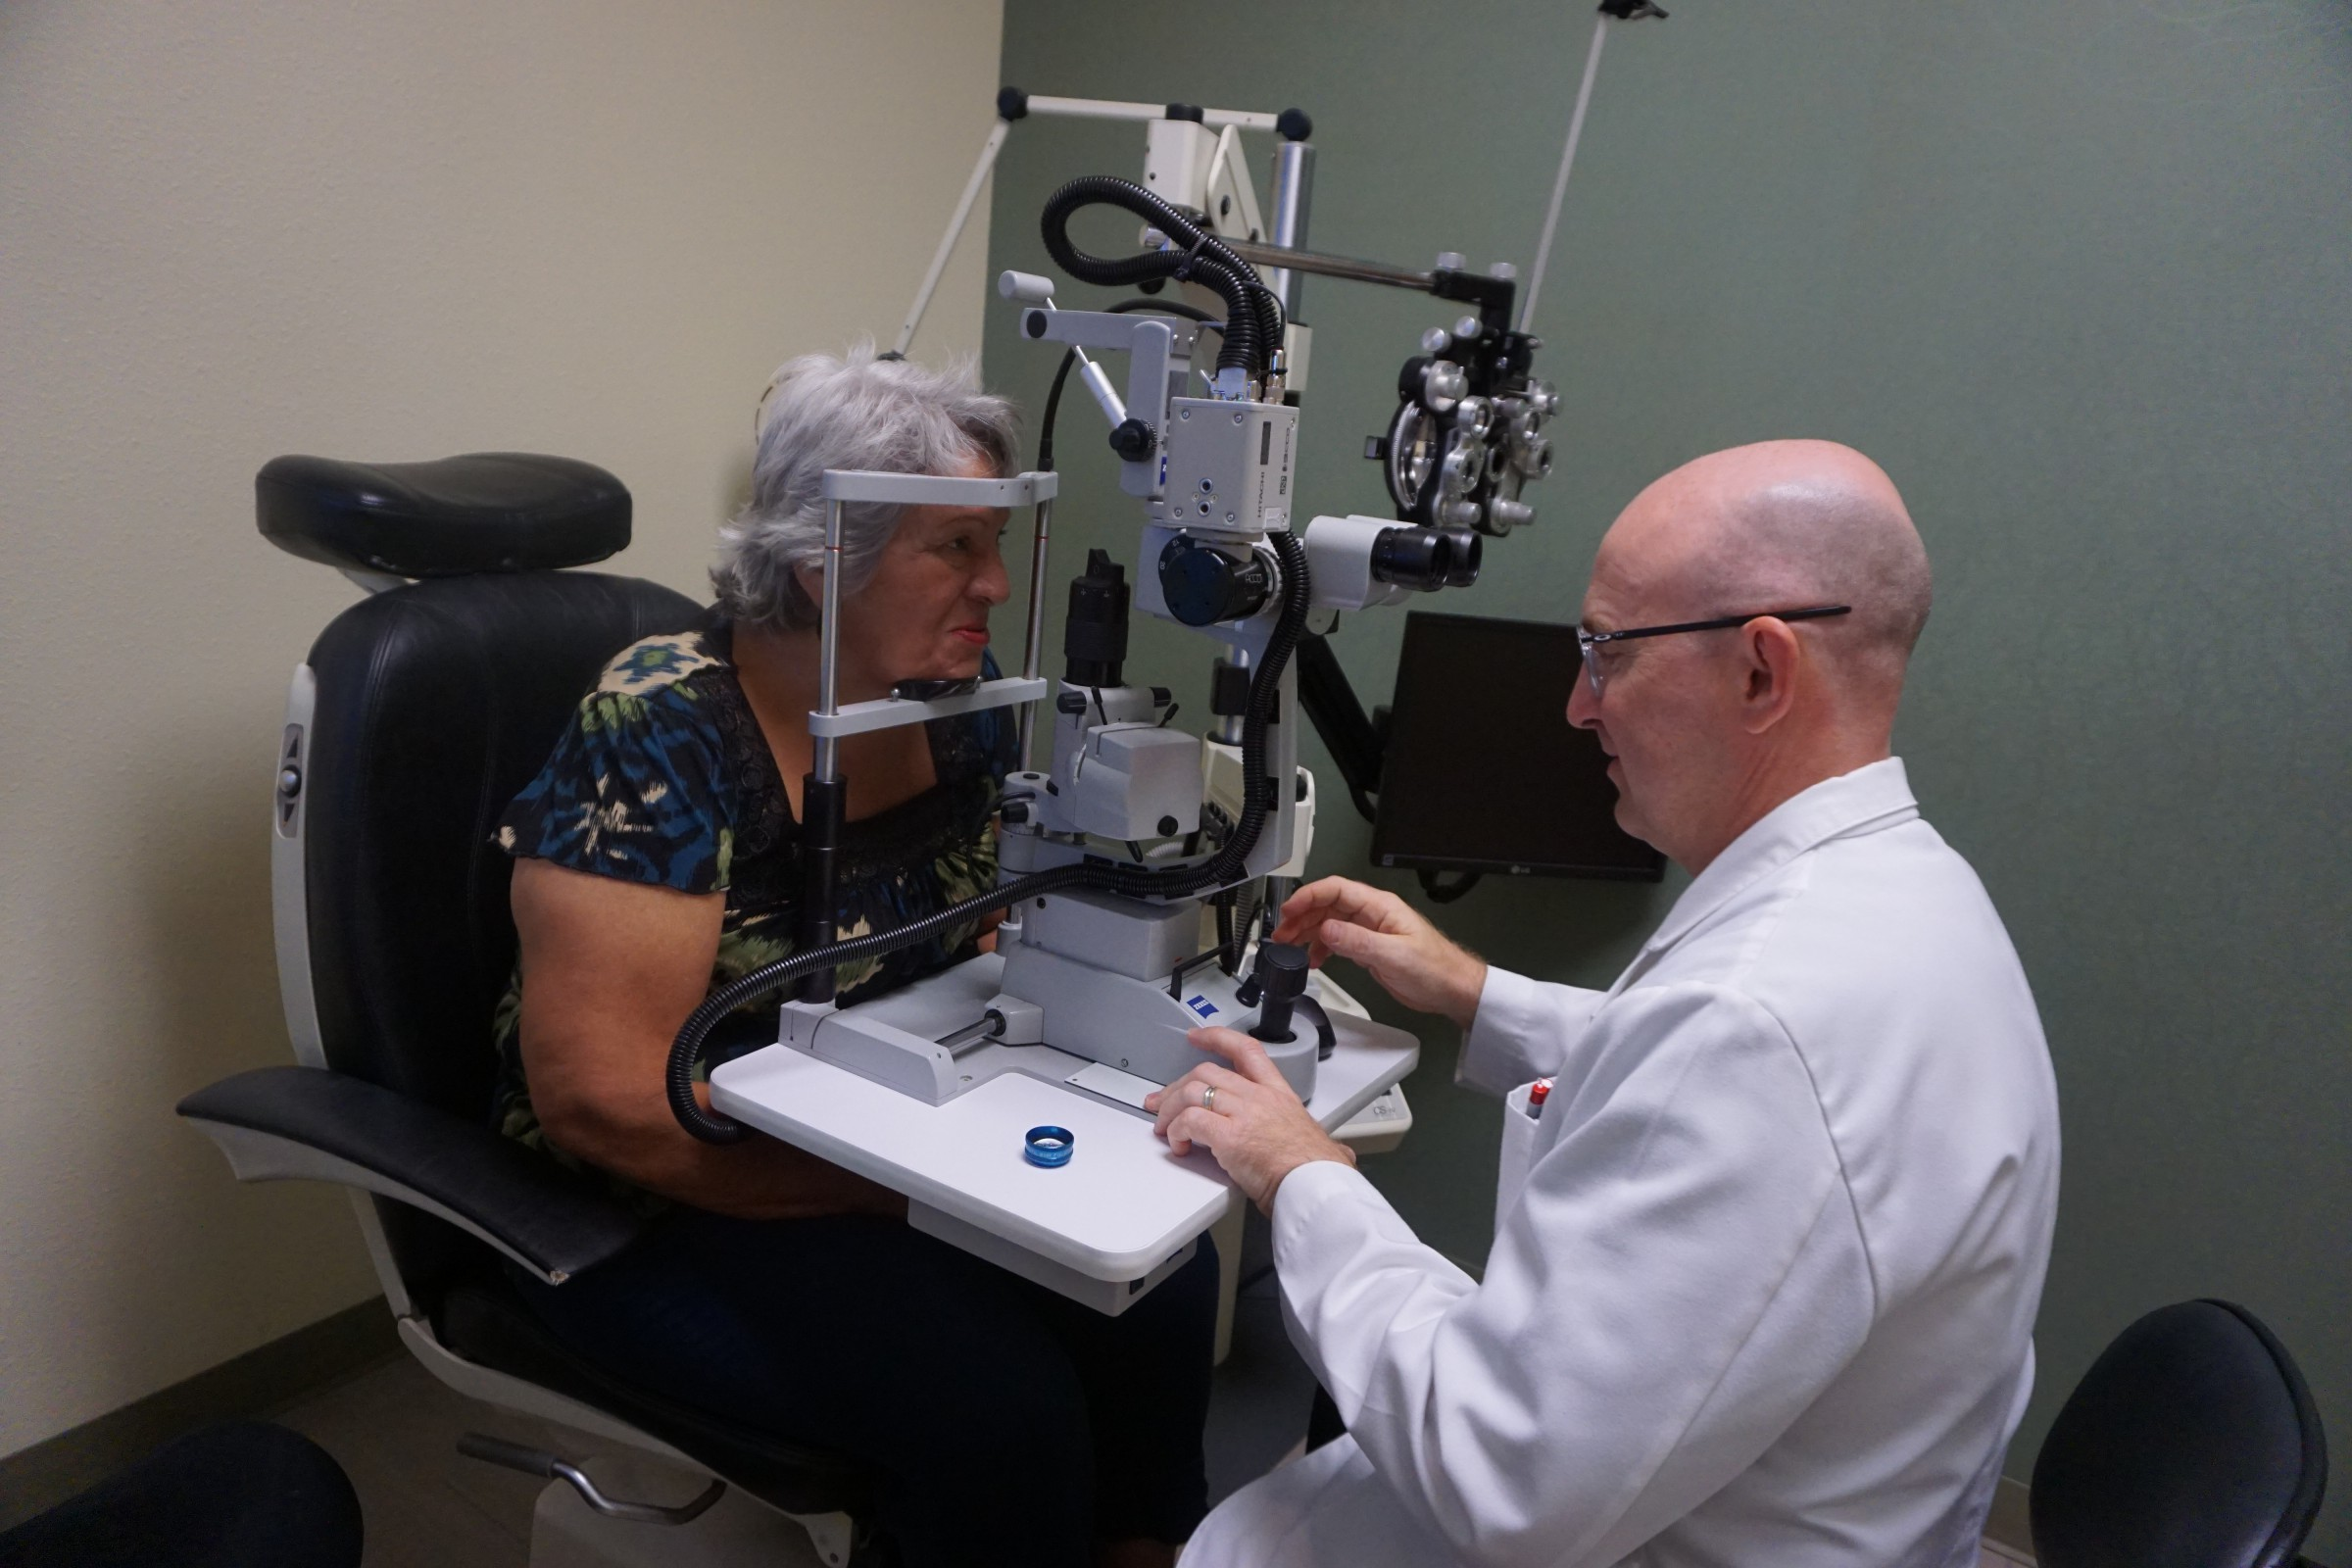 Dr. Kerry T. Holt performing eye exam, Optometrist in El Paso, TX